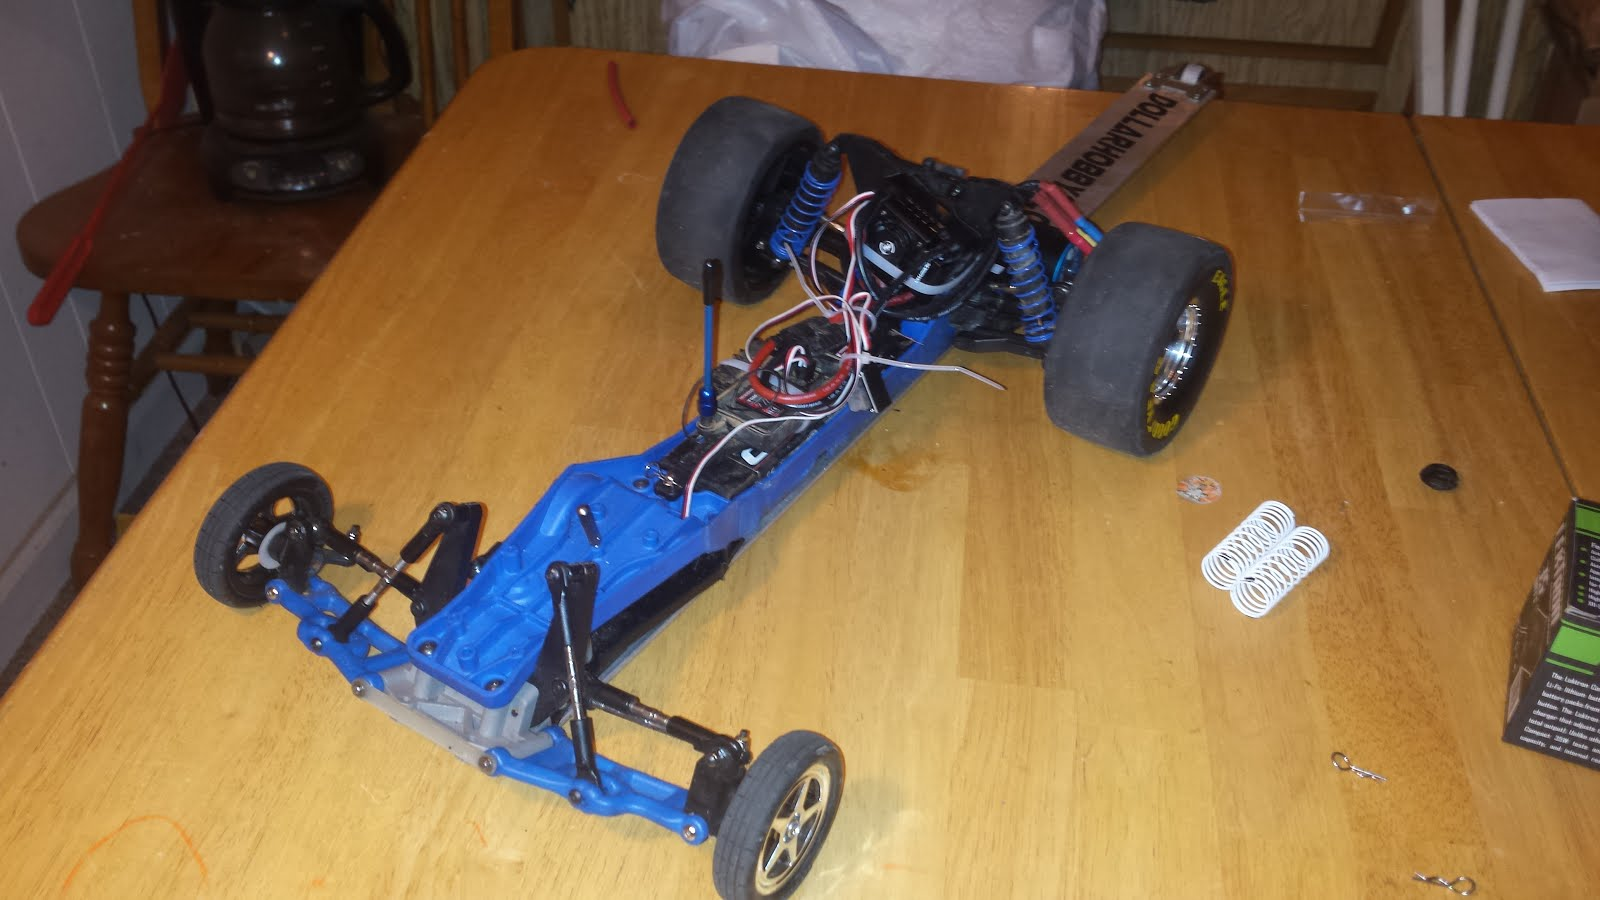 Traxxas Slash 2wd Dragster - DragSlash - Speed Runs